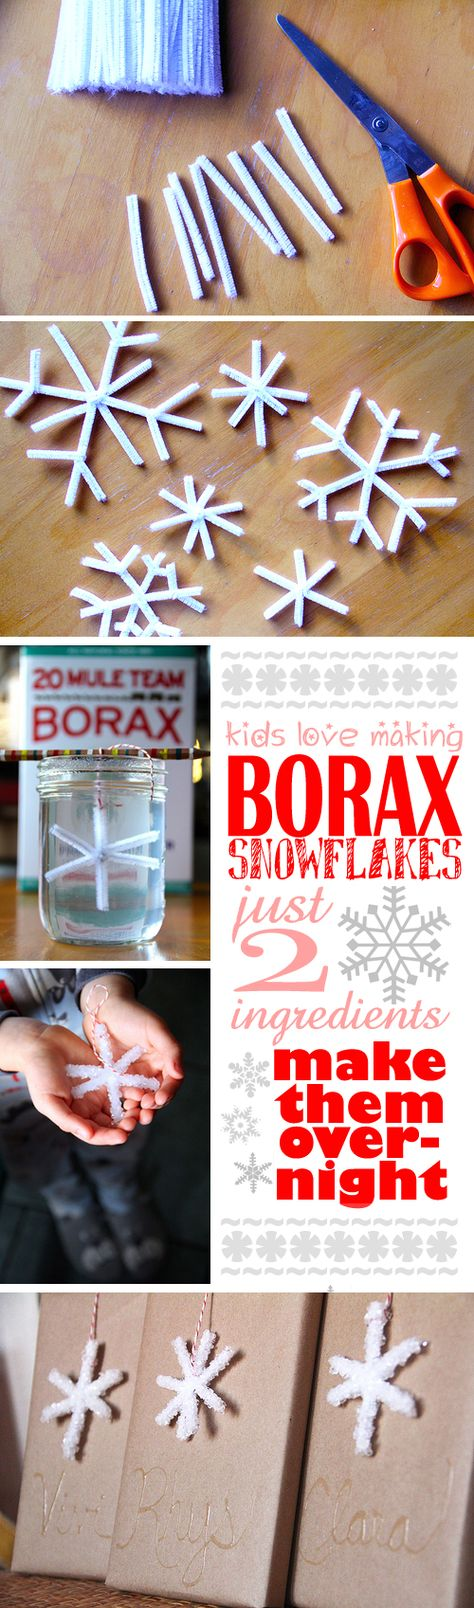 Easy Borax snowflakes. Perfect advent calendar craft for kids. Awesome as ornaments or gift tags. #winter #crafts #diy